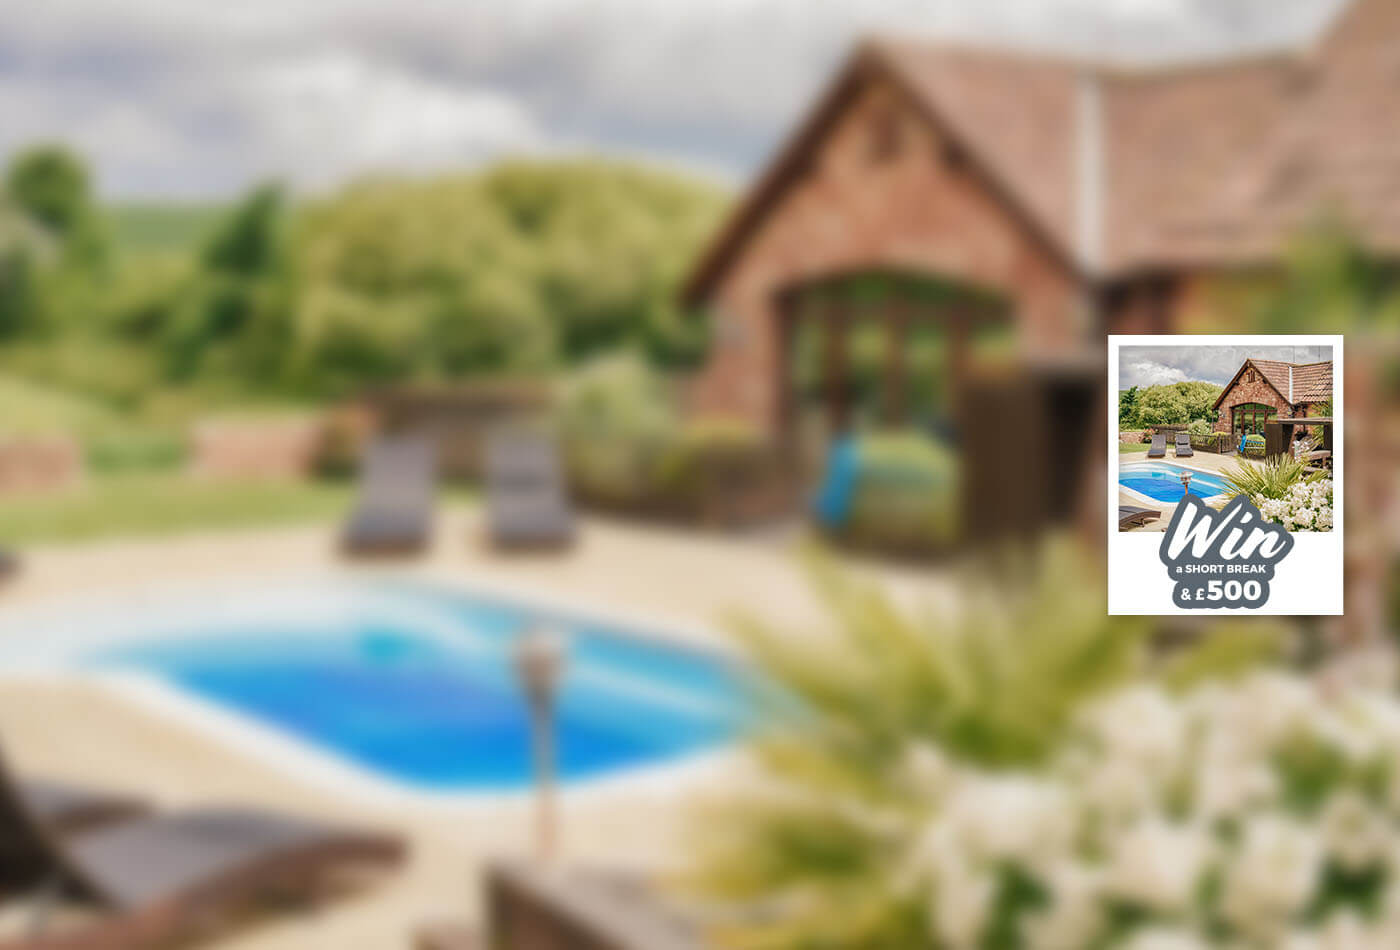 March 2019 Prize Draw: Win a Short Break plus £500 - Sykes Holiday